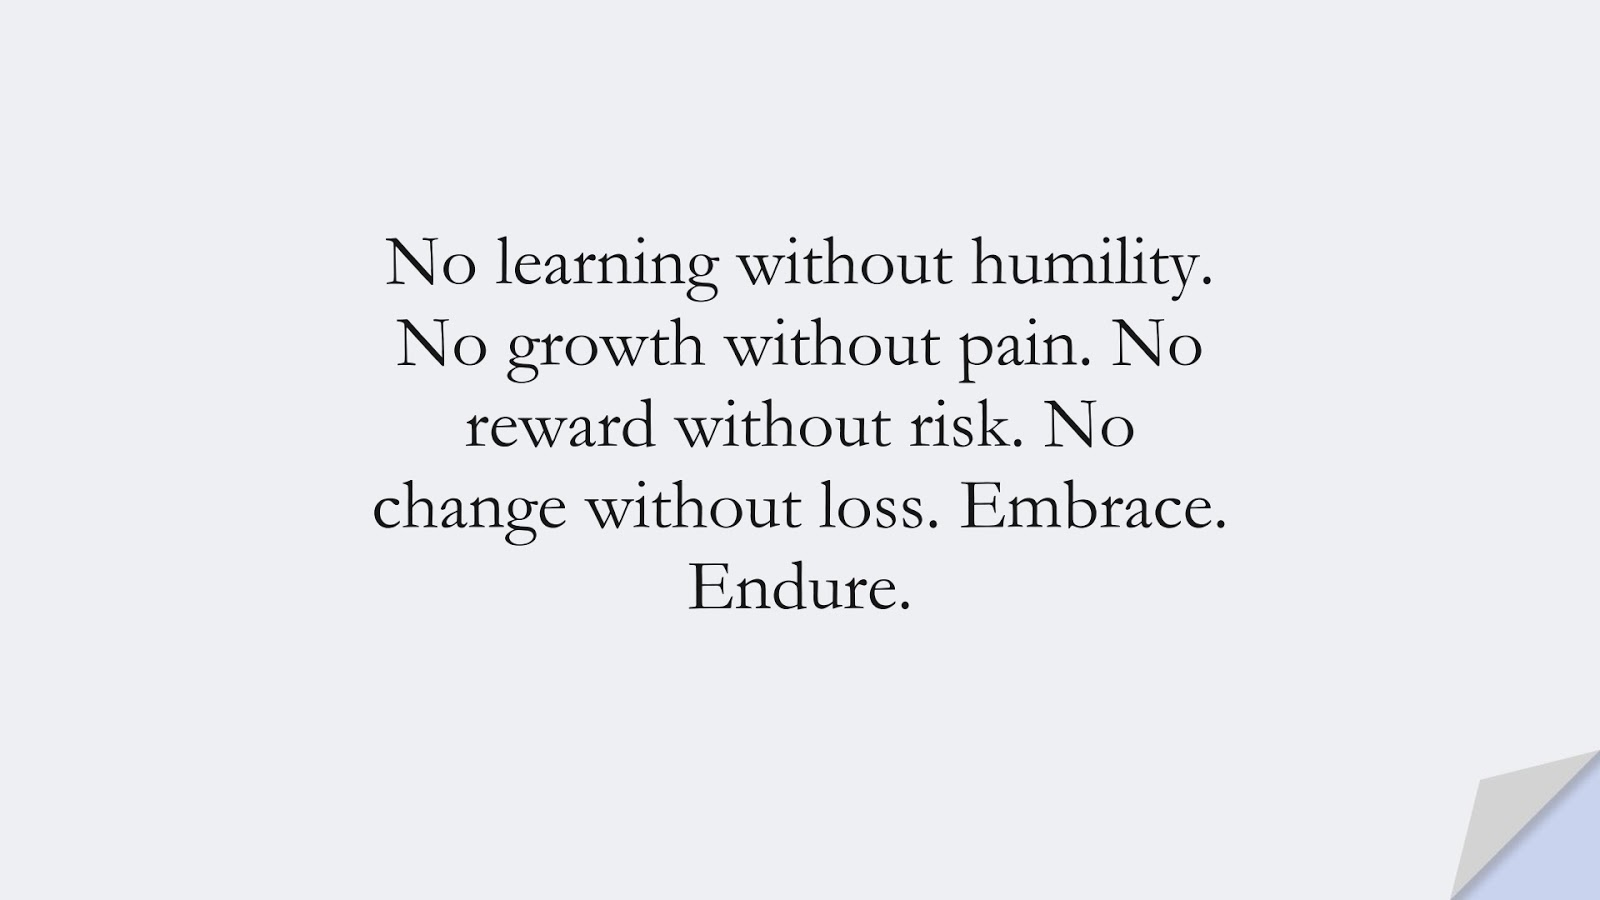 No learning without humility. No growth without pain. No reward without risk. No change without loss. Embrace. Endure.FALSE